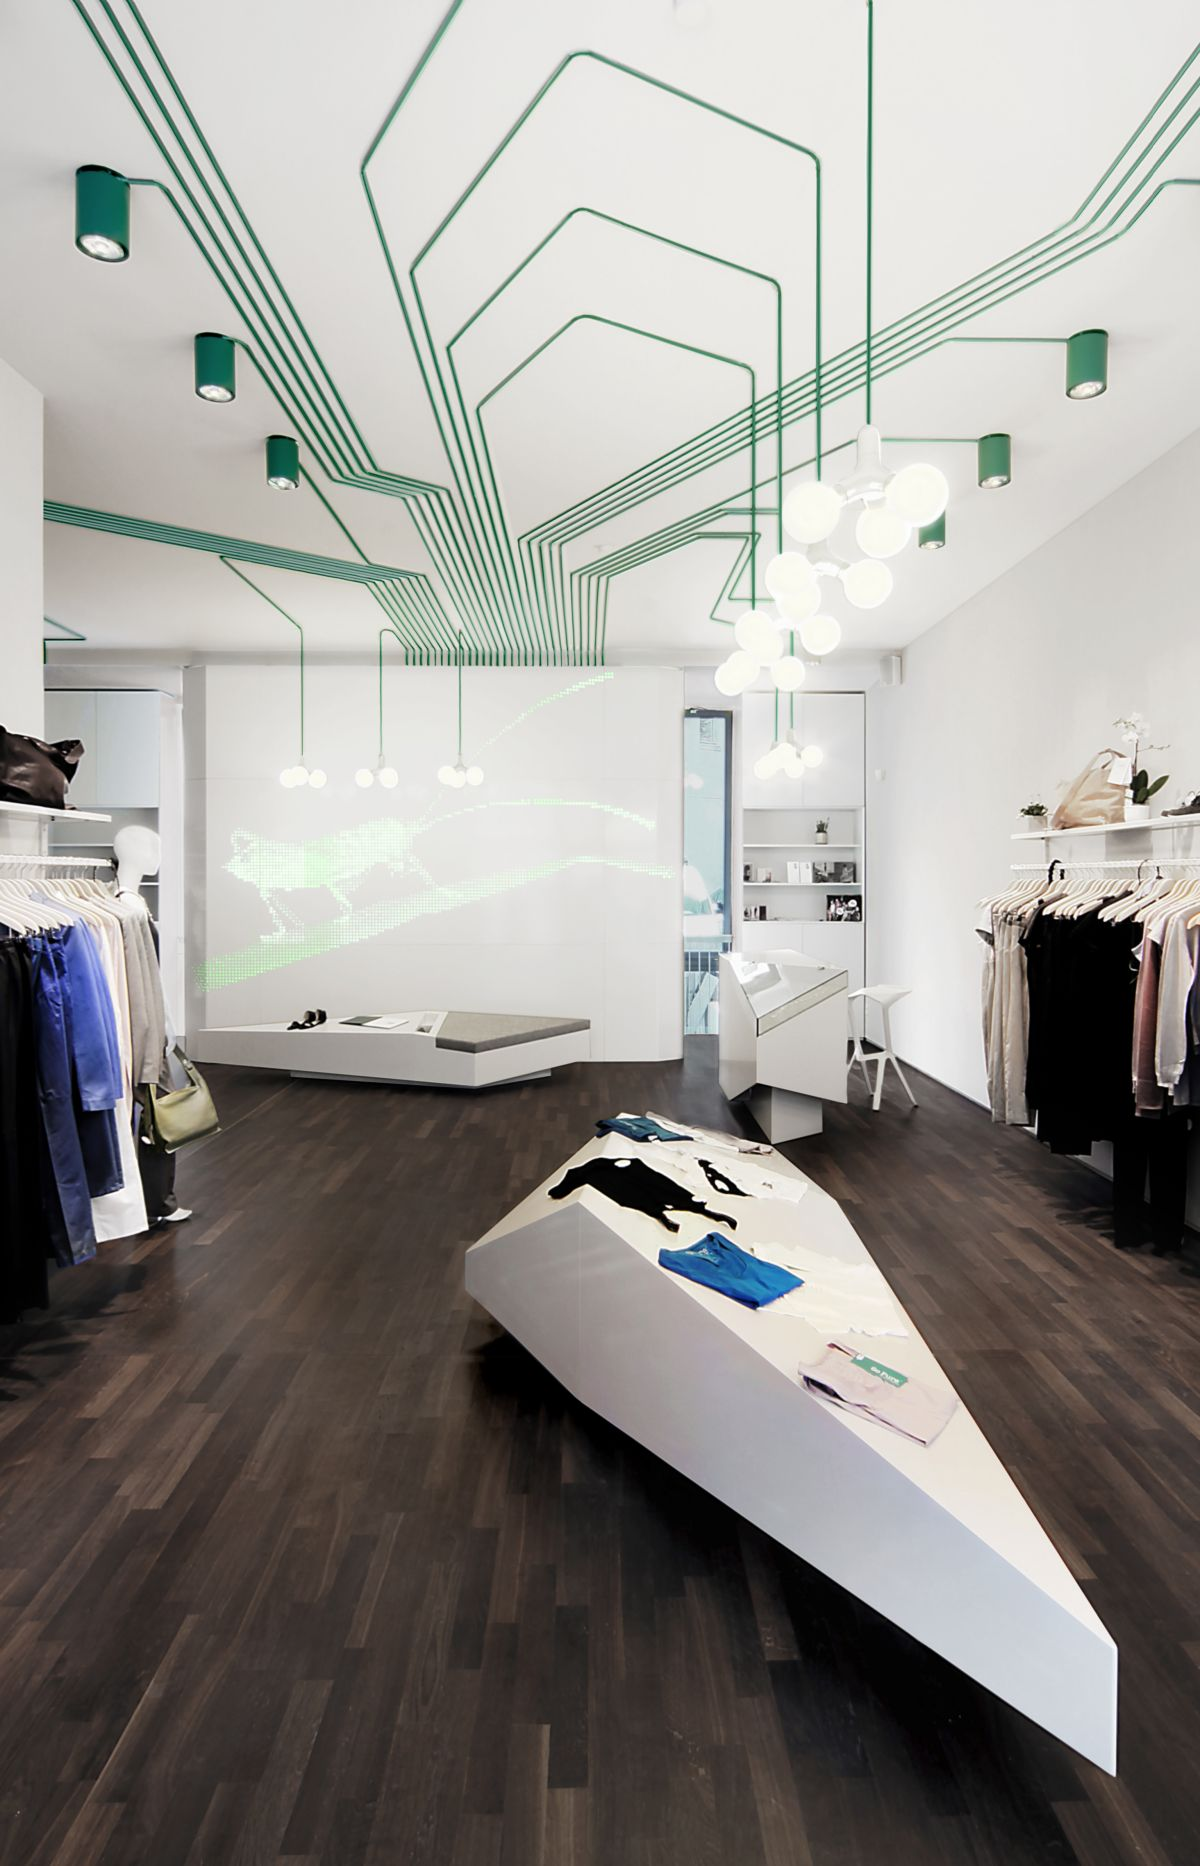 The maygreen shop interior by kinzo karmatrendz for Space architecture and design